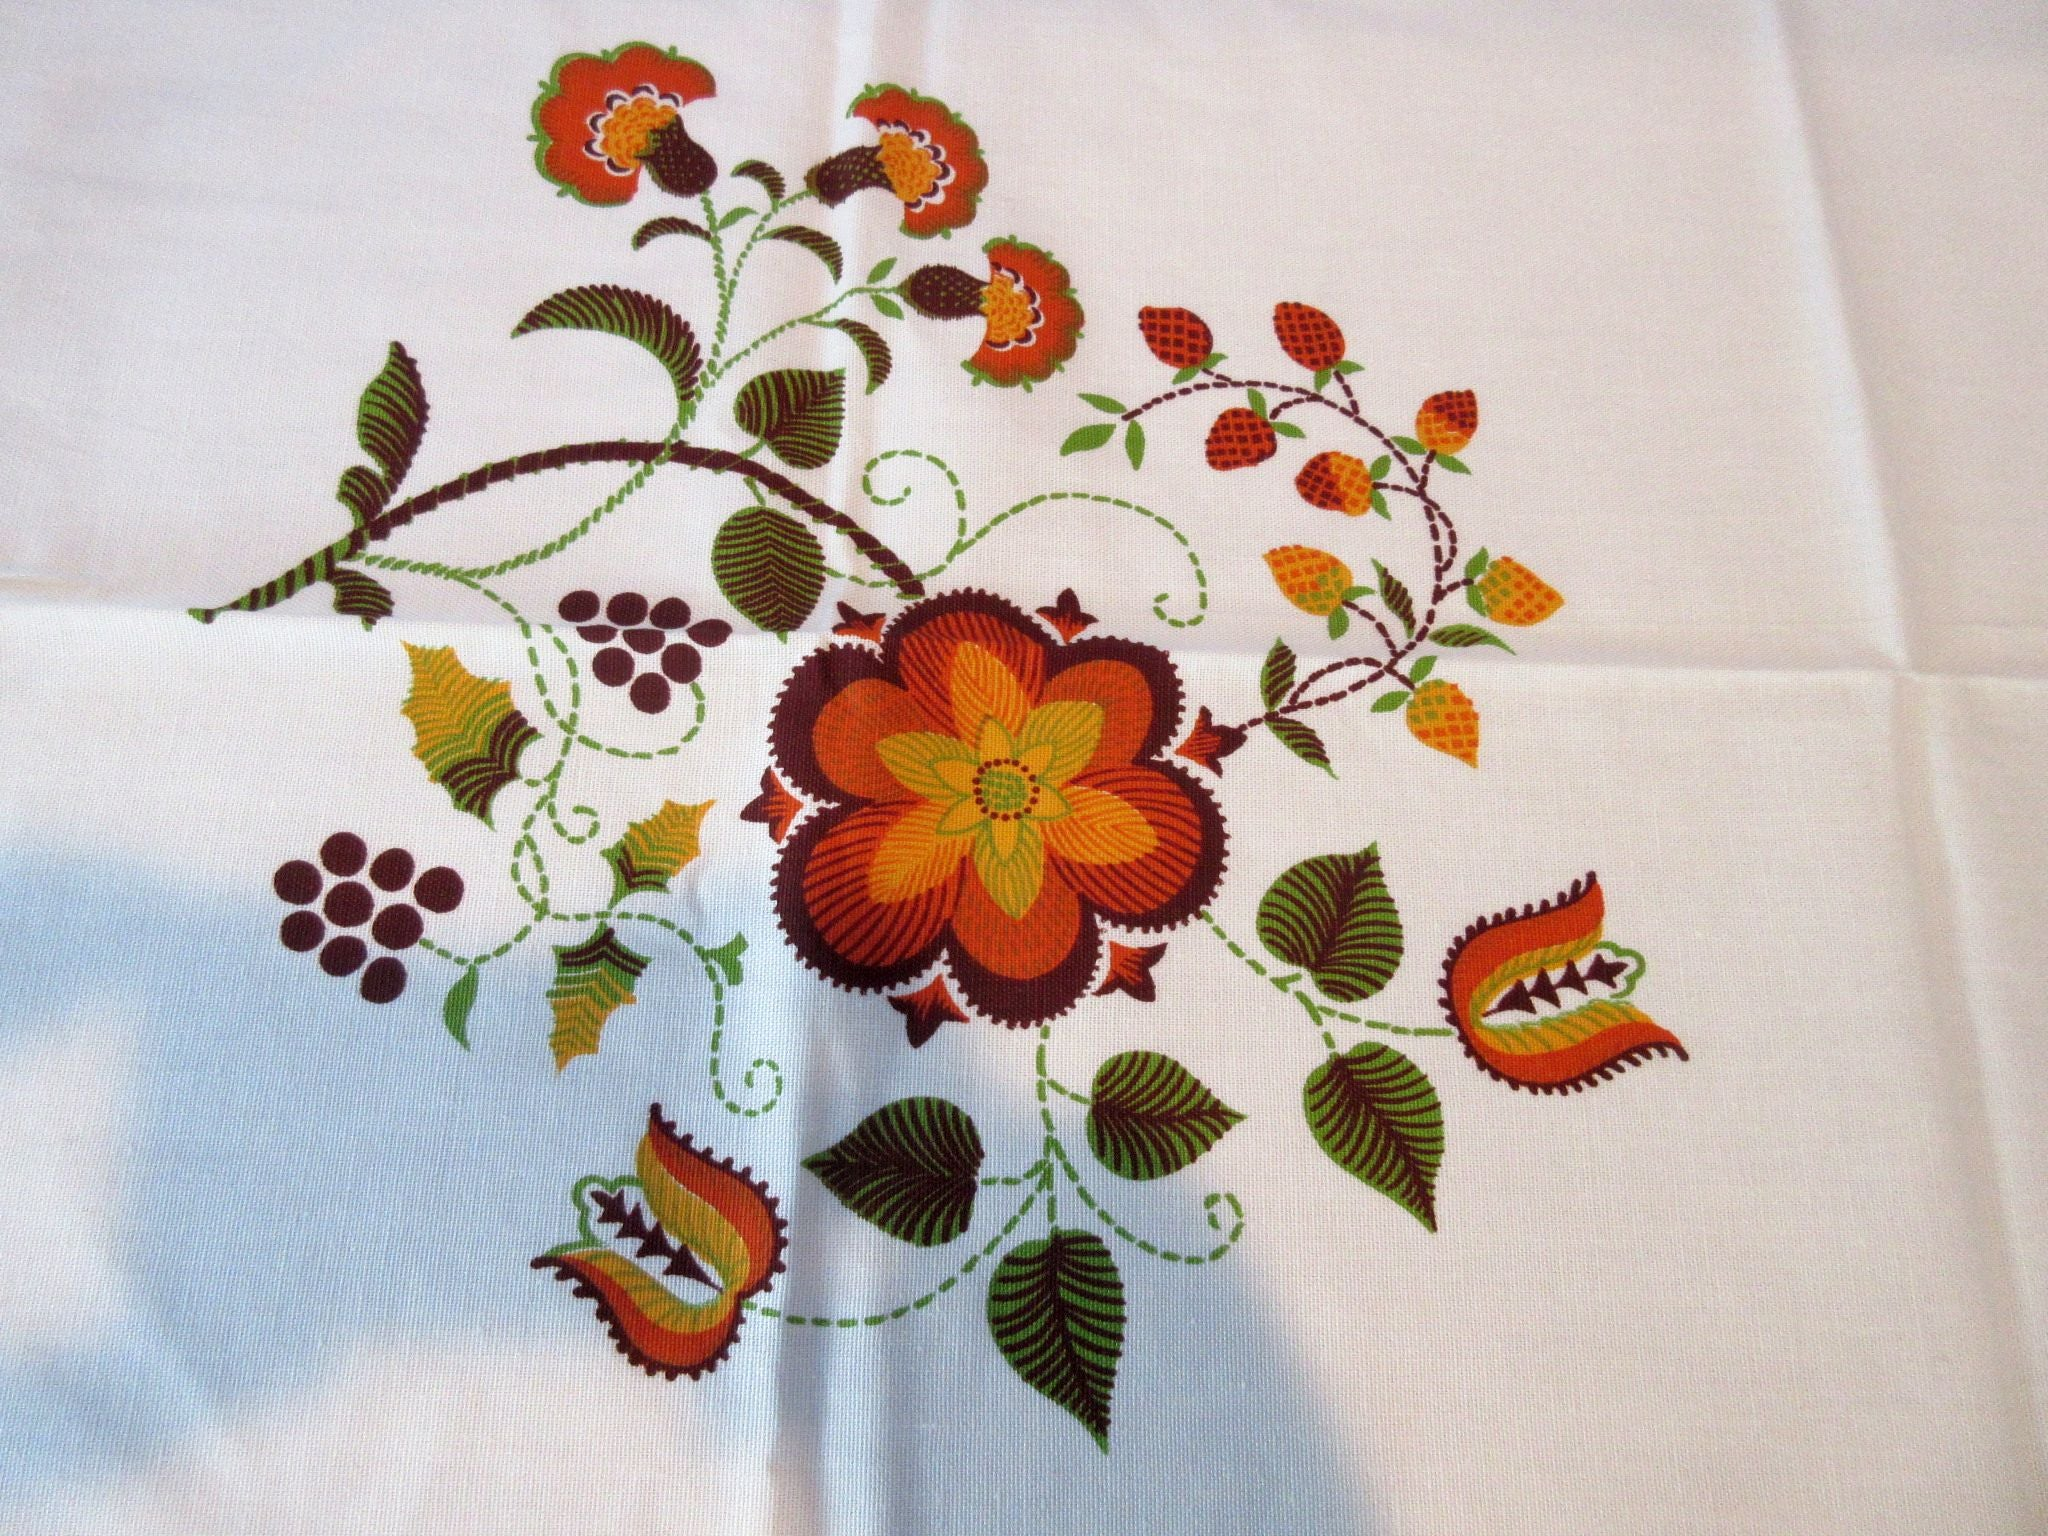 Fall Autumn Crewel PA Dutch MWT Floral Vintage Printed Tablecloth (68 X 50)